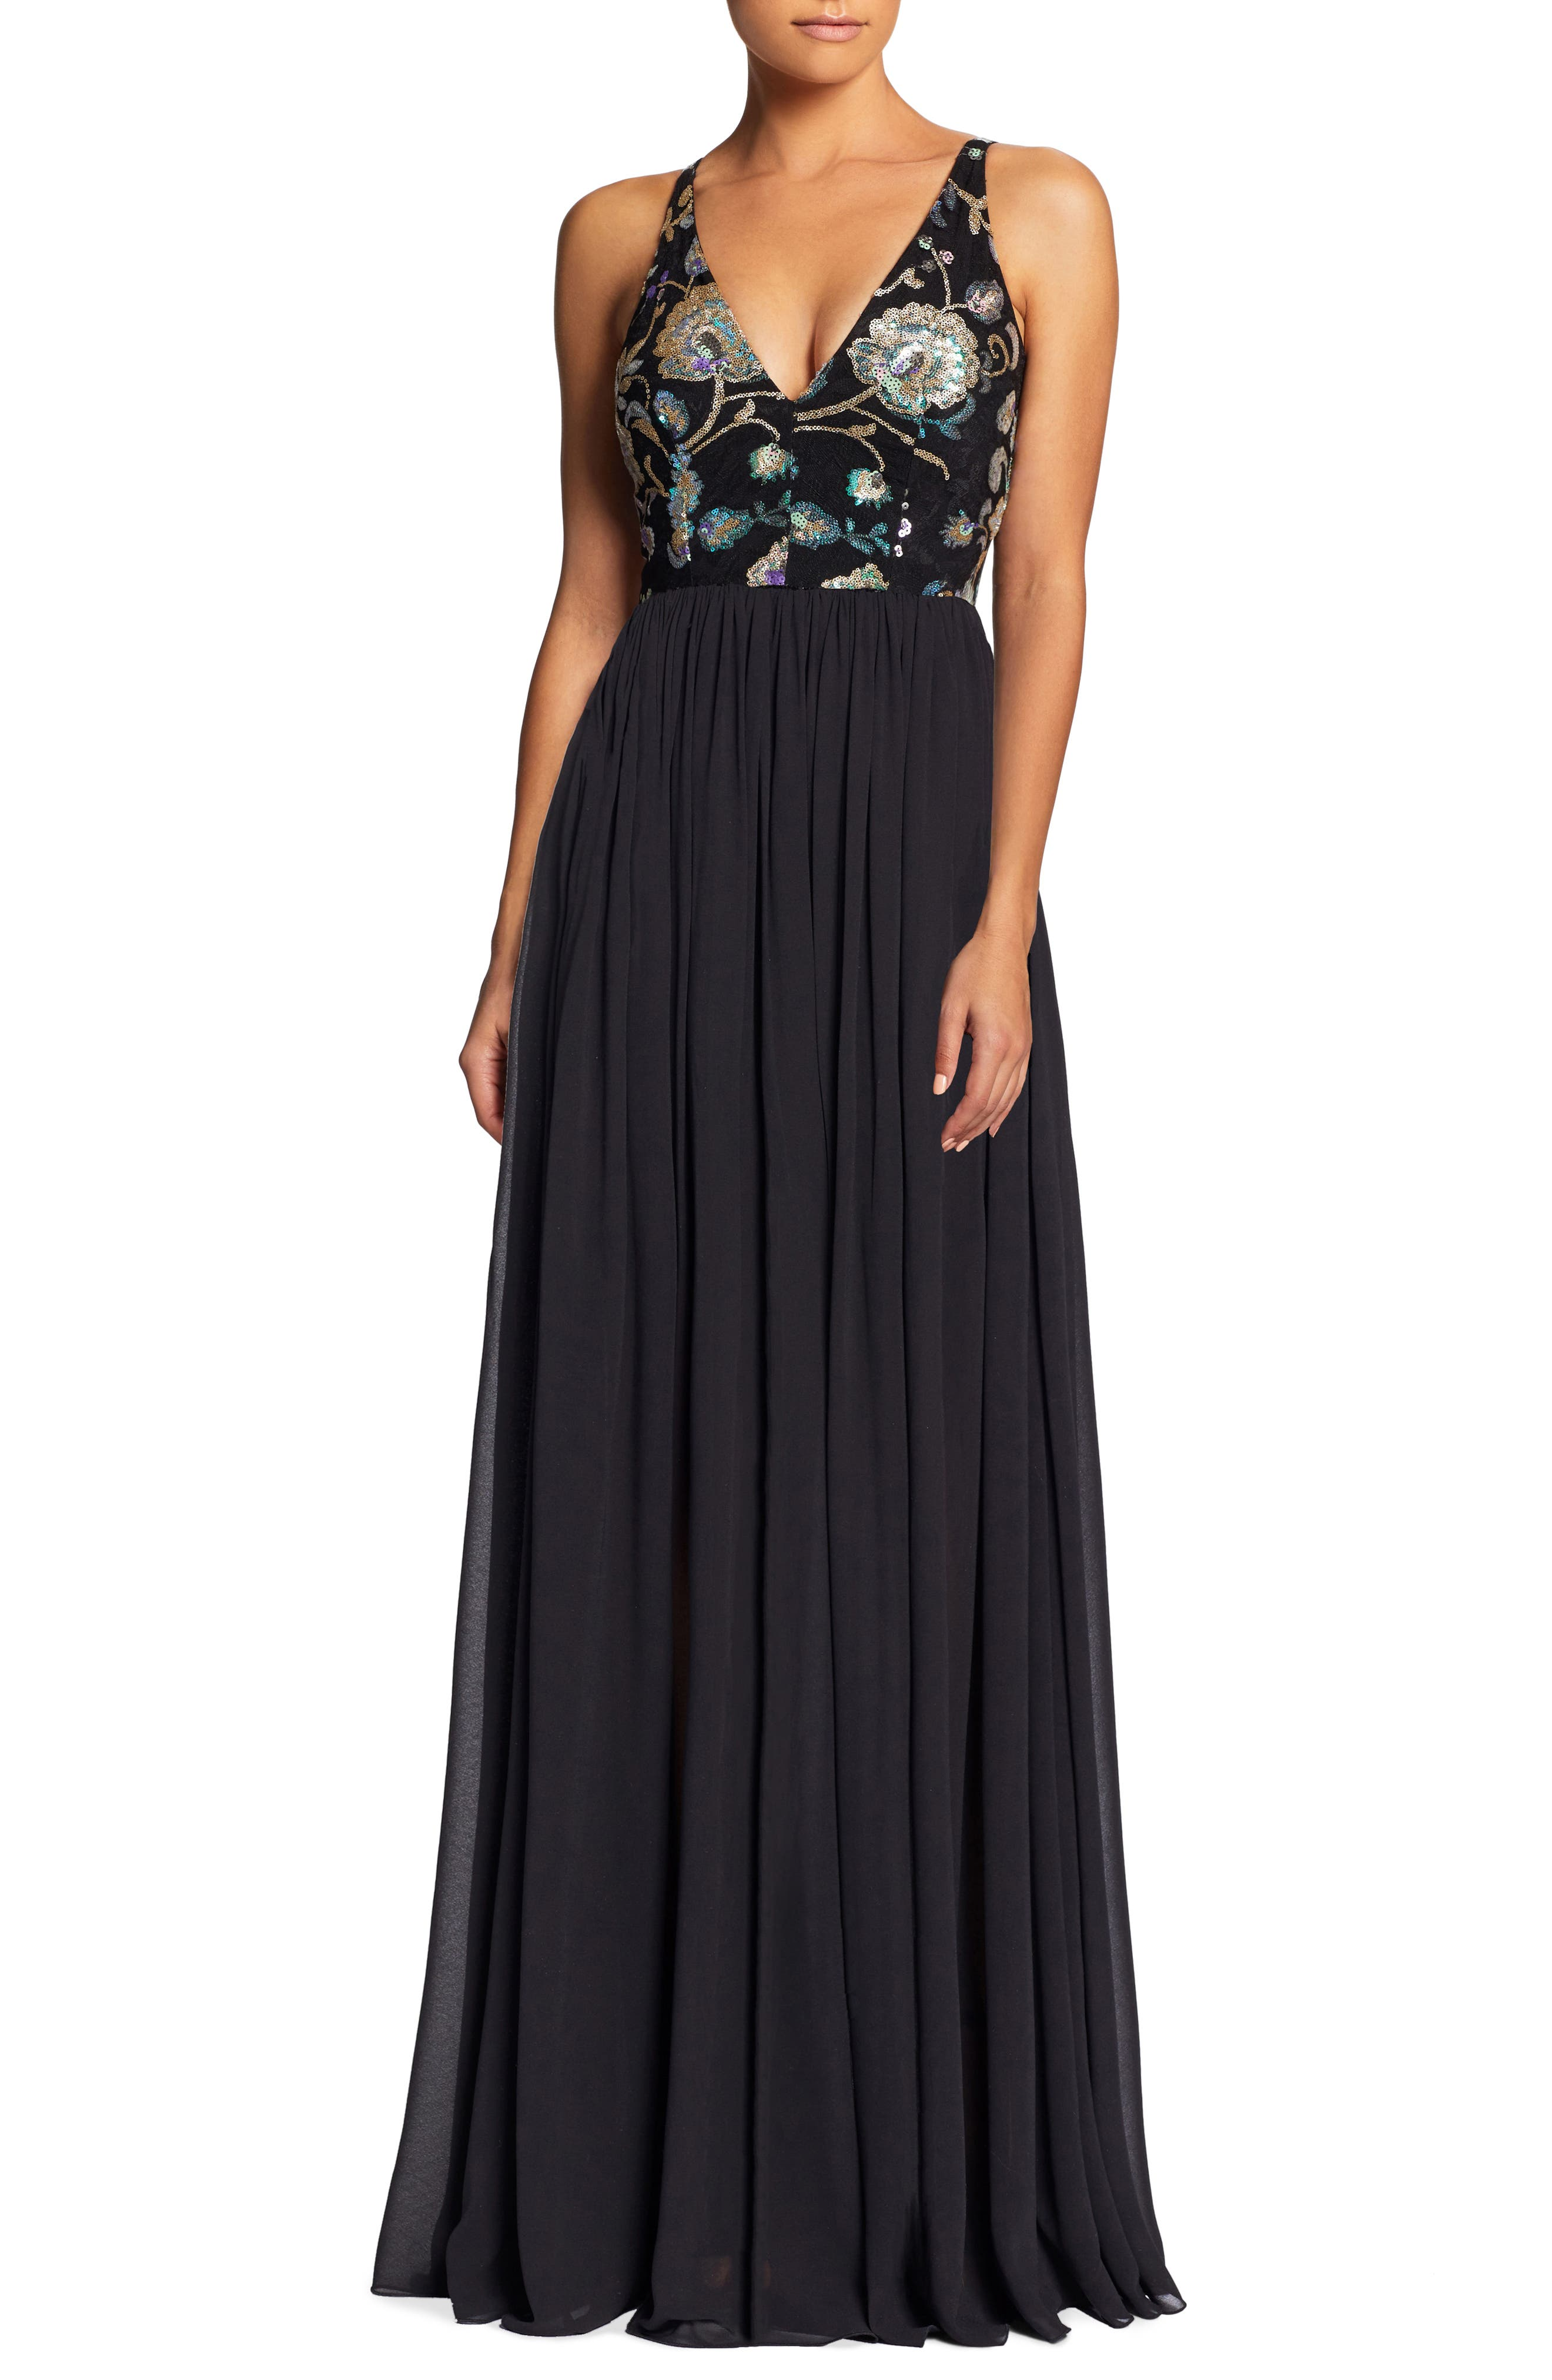 Adriana Sequin Bodice Gown,                         Main,                         color, Black/ Iridescent Floral